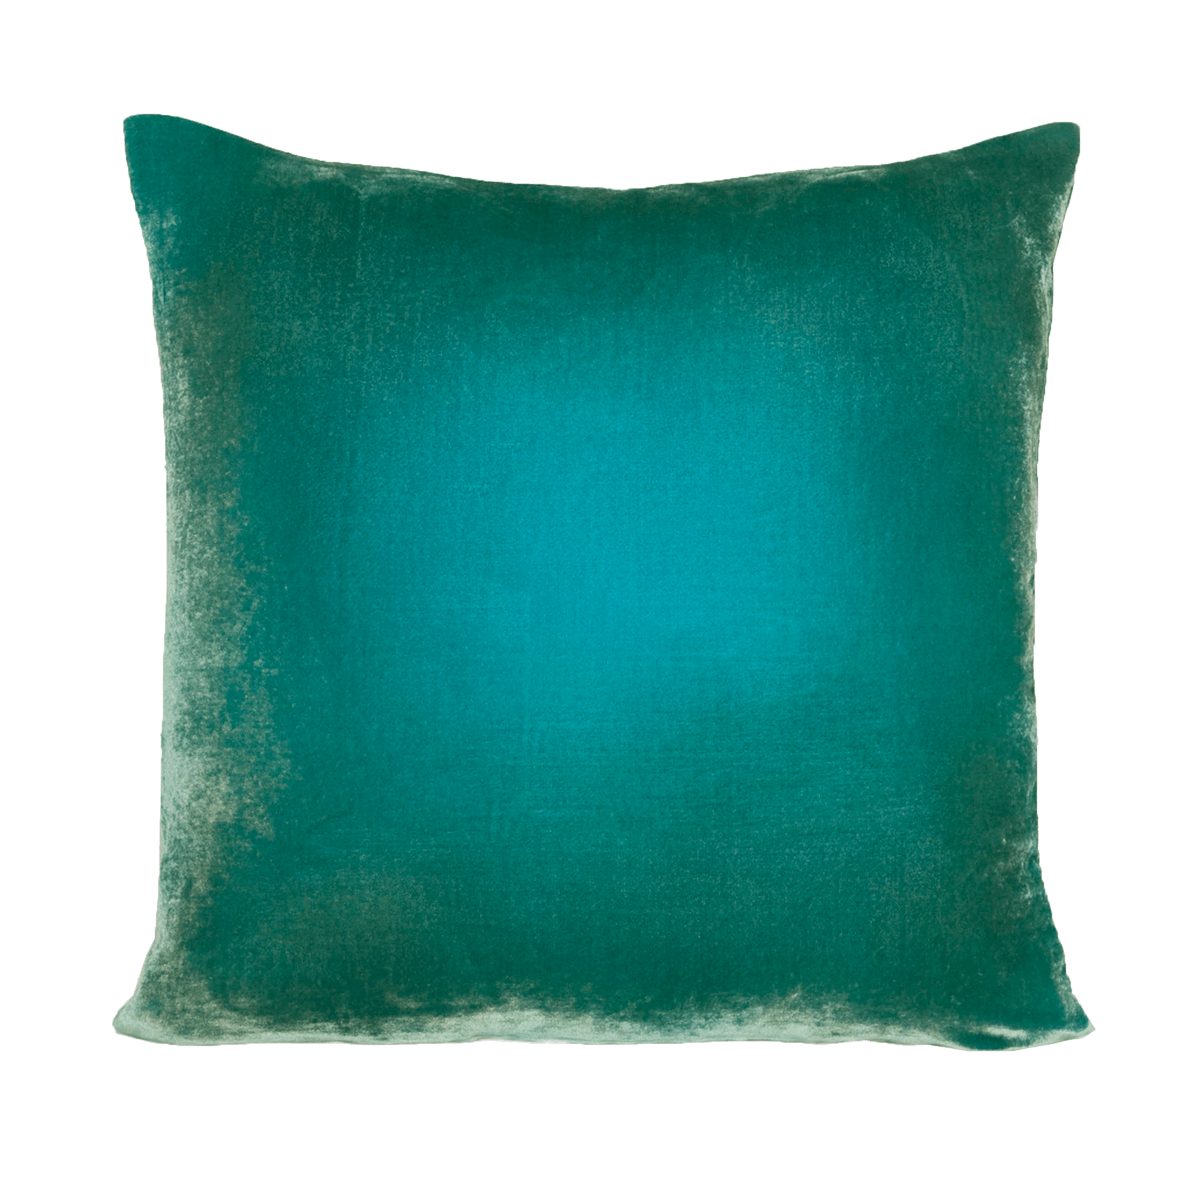 Couch pillow png. Pictures teal throw pillows